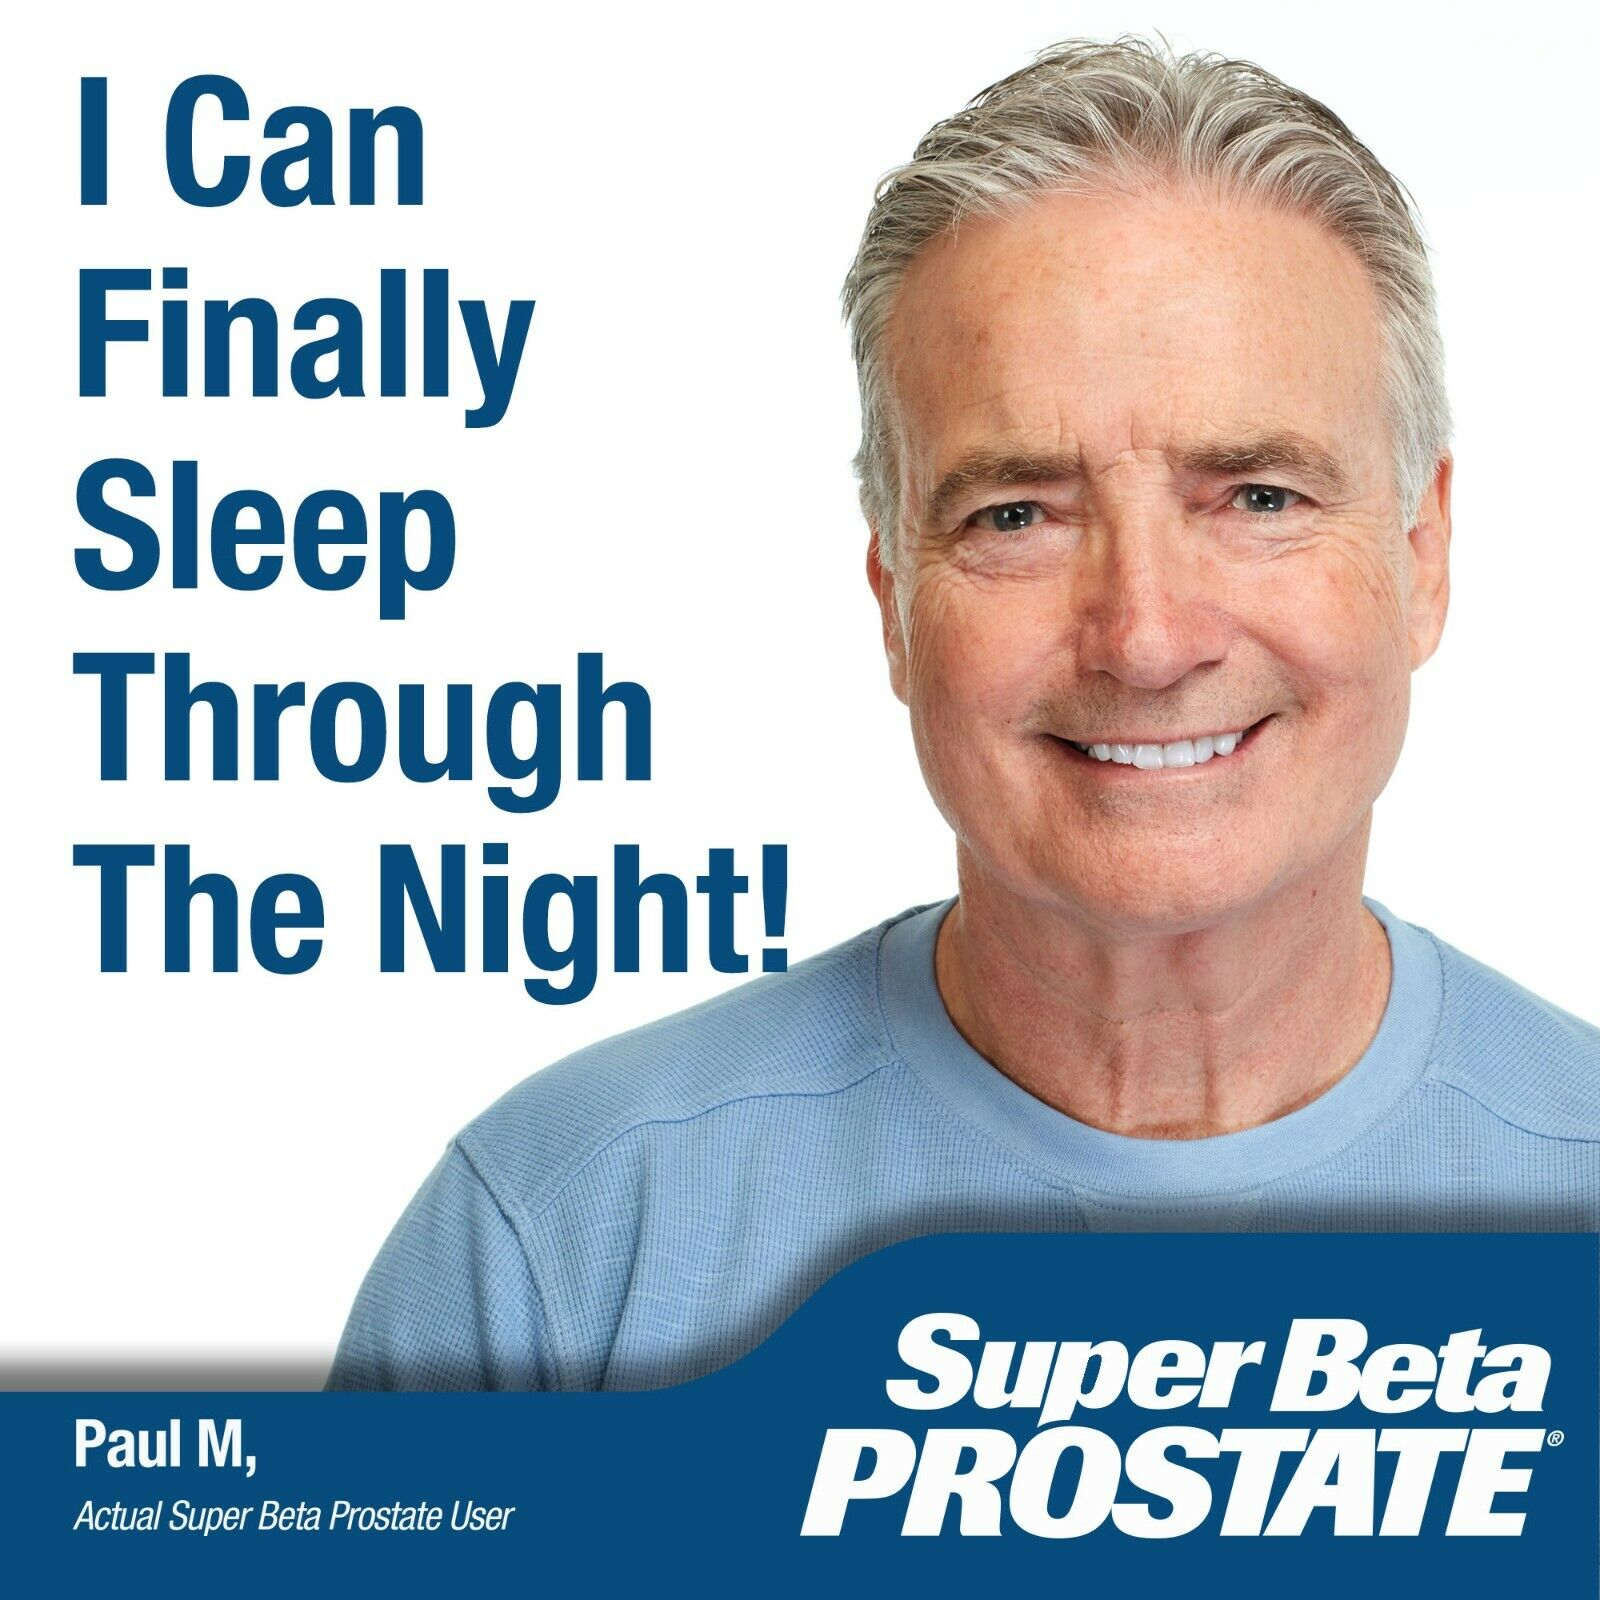 Super Beta Prostate Supplement -Reduce Frequent Urges to Urinate- NEW -FREE S&H 6